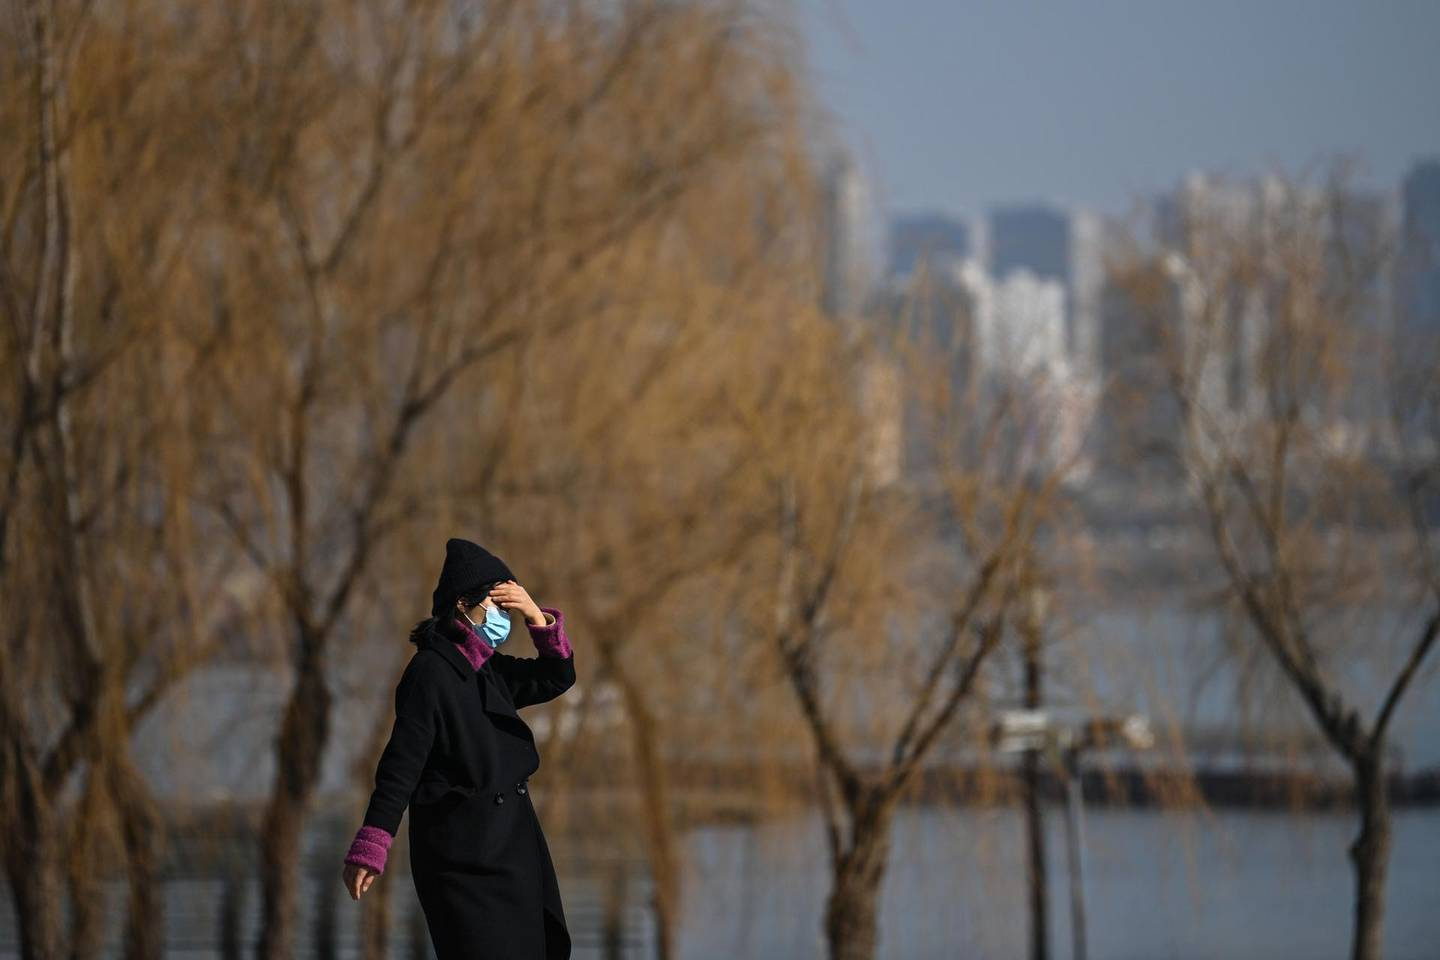 A woman wearing a face mask as a preventive measure against the Covid-19 coronavirus walk in a park along Yangtze River in Wuhan, China's central Hubei province on January 19, 2021.  / AFP / Hector RETAMAL